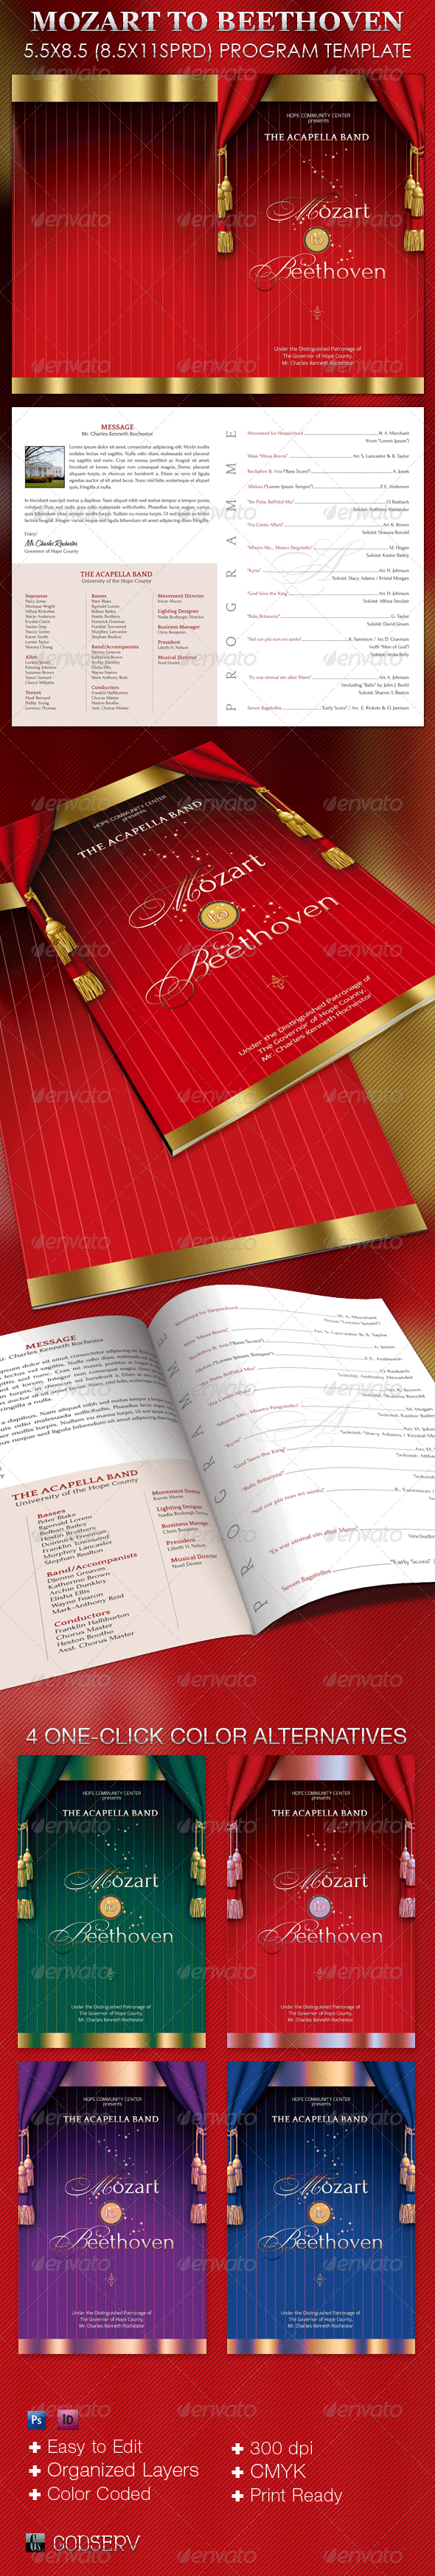 Mozart Beethoven Program Template - Informational Brochures